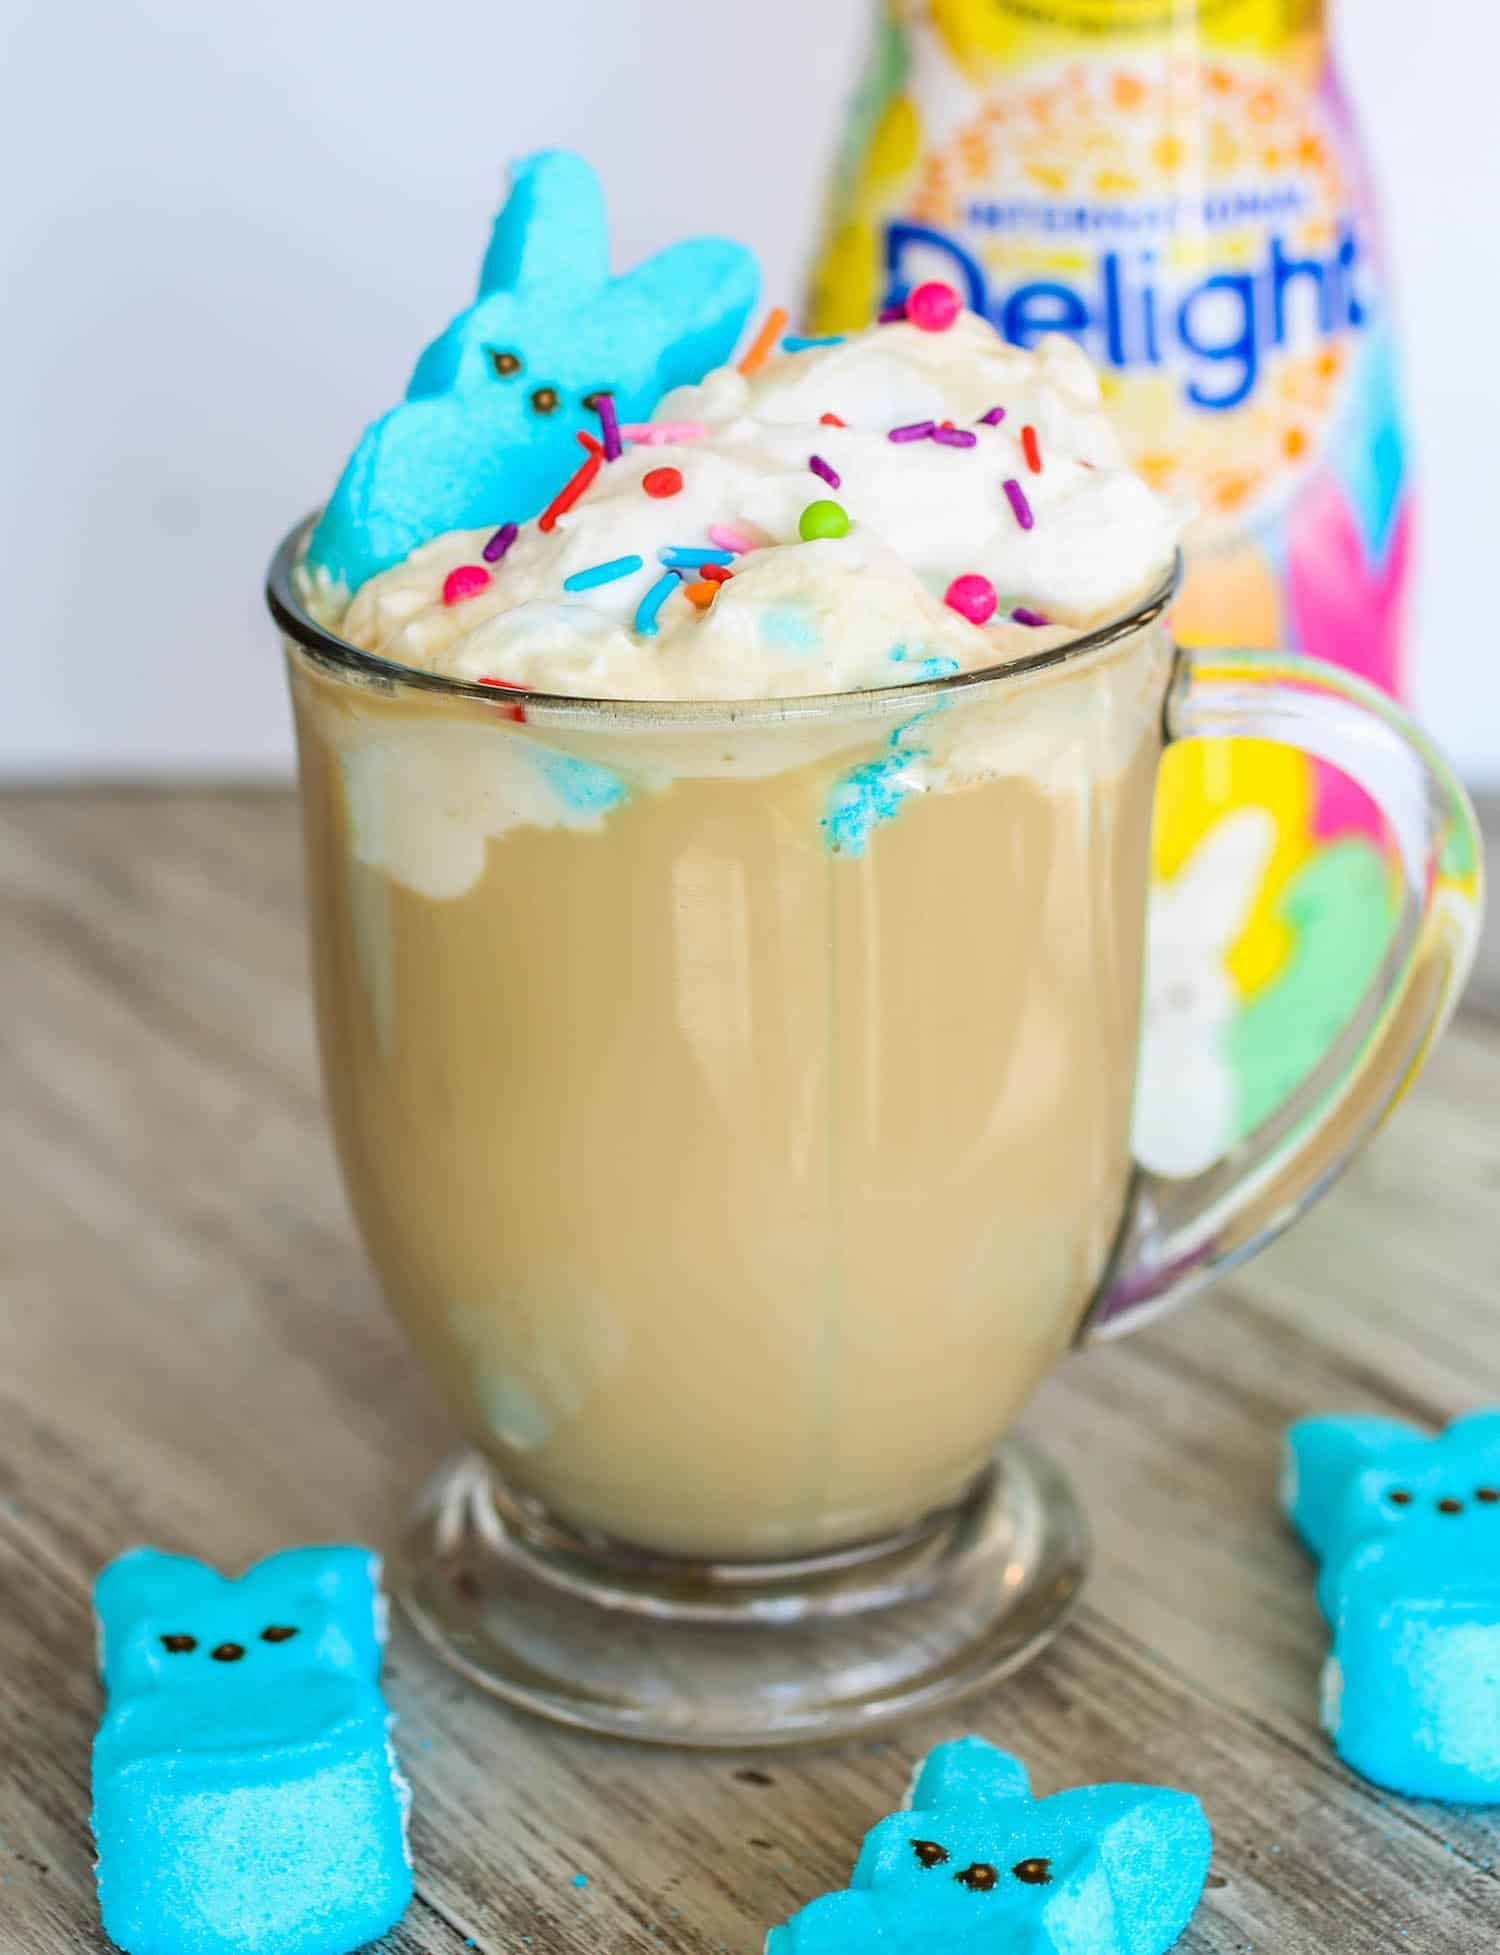 Vanilla Marshmallow Latte with Homemade Marshmallow Whipped Cream - Sprinkle Some Sugar